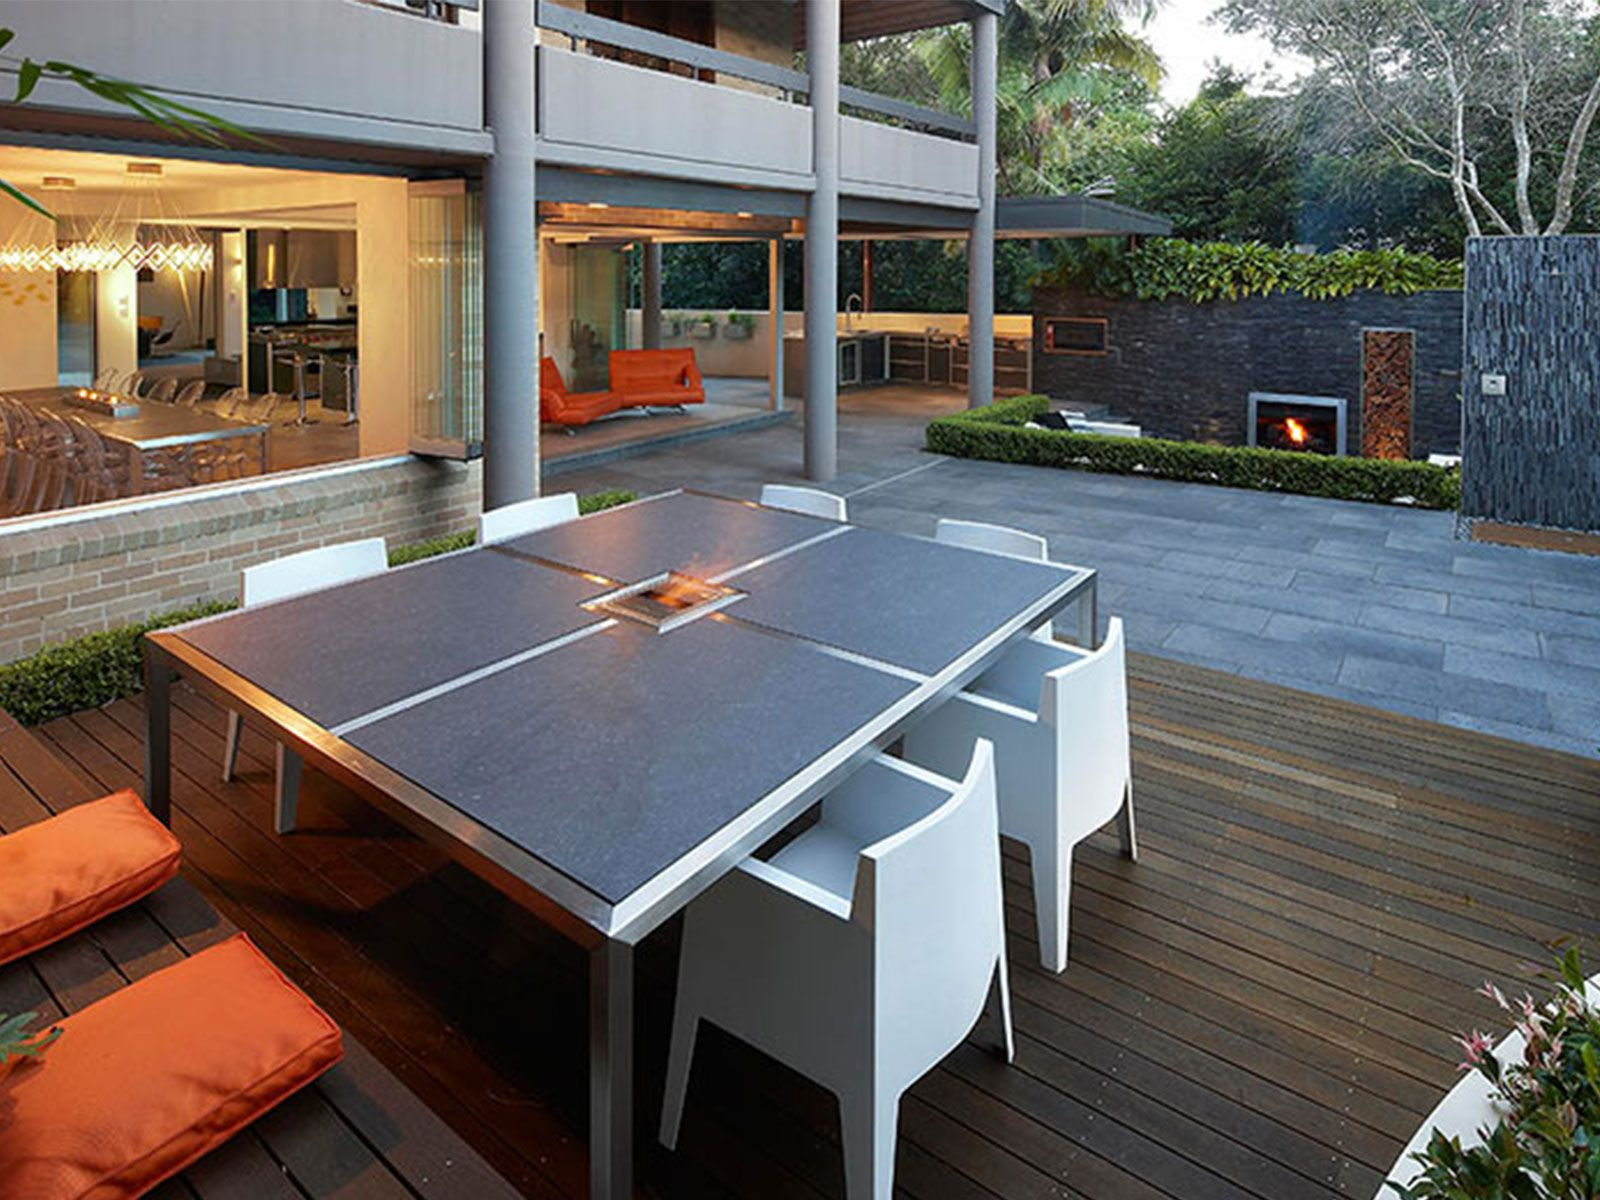 Lounge in built dining table with wooden bench Outdoor